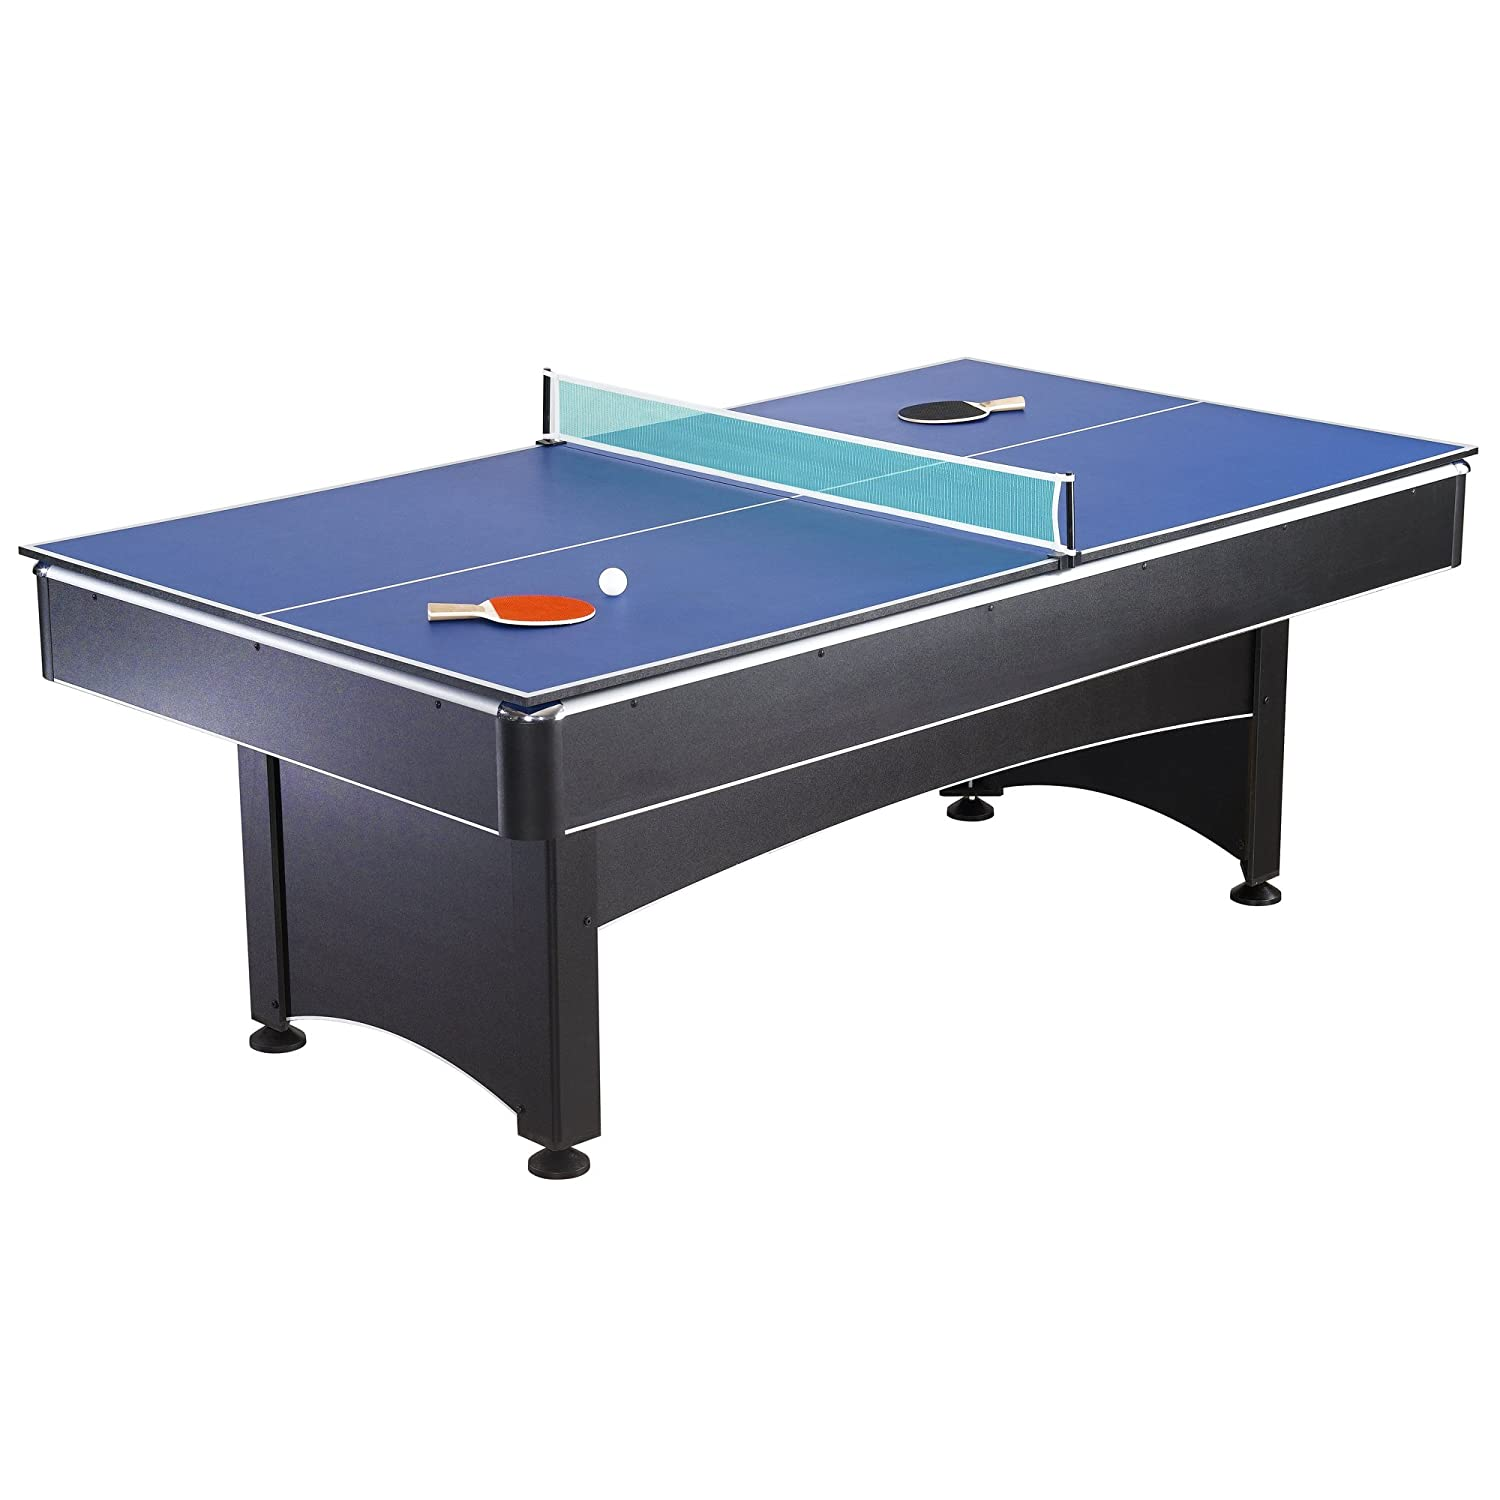 3 in 1 ping pong pool air hockey table - Amazon Com Hathaway Maverick Table Tennis And Pool Table Black Red Blue 7 Feet Tabletop Table Tennis Games Sports Outdoors